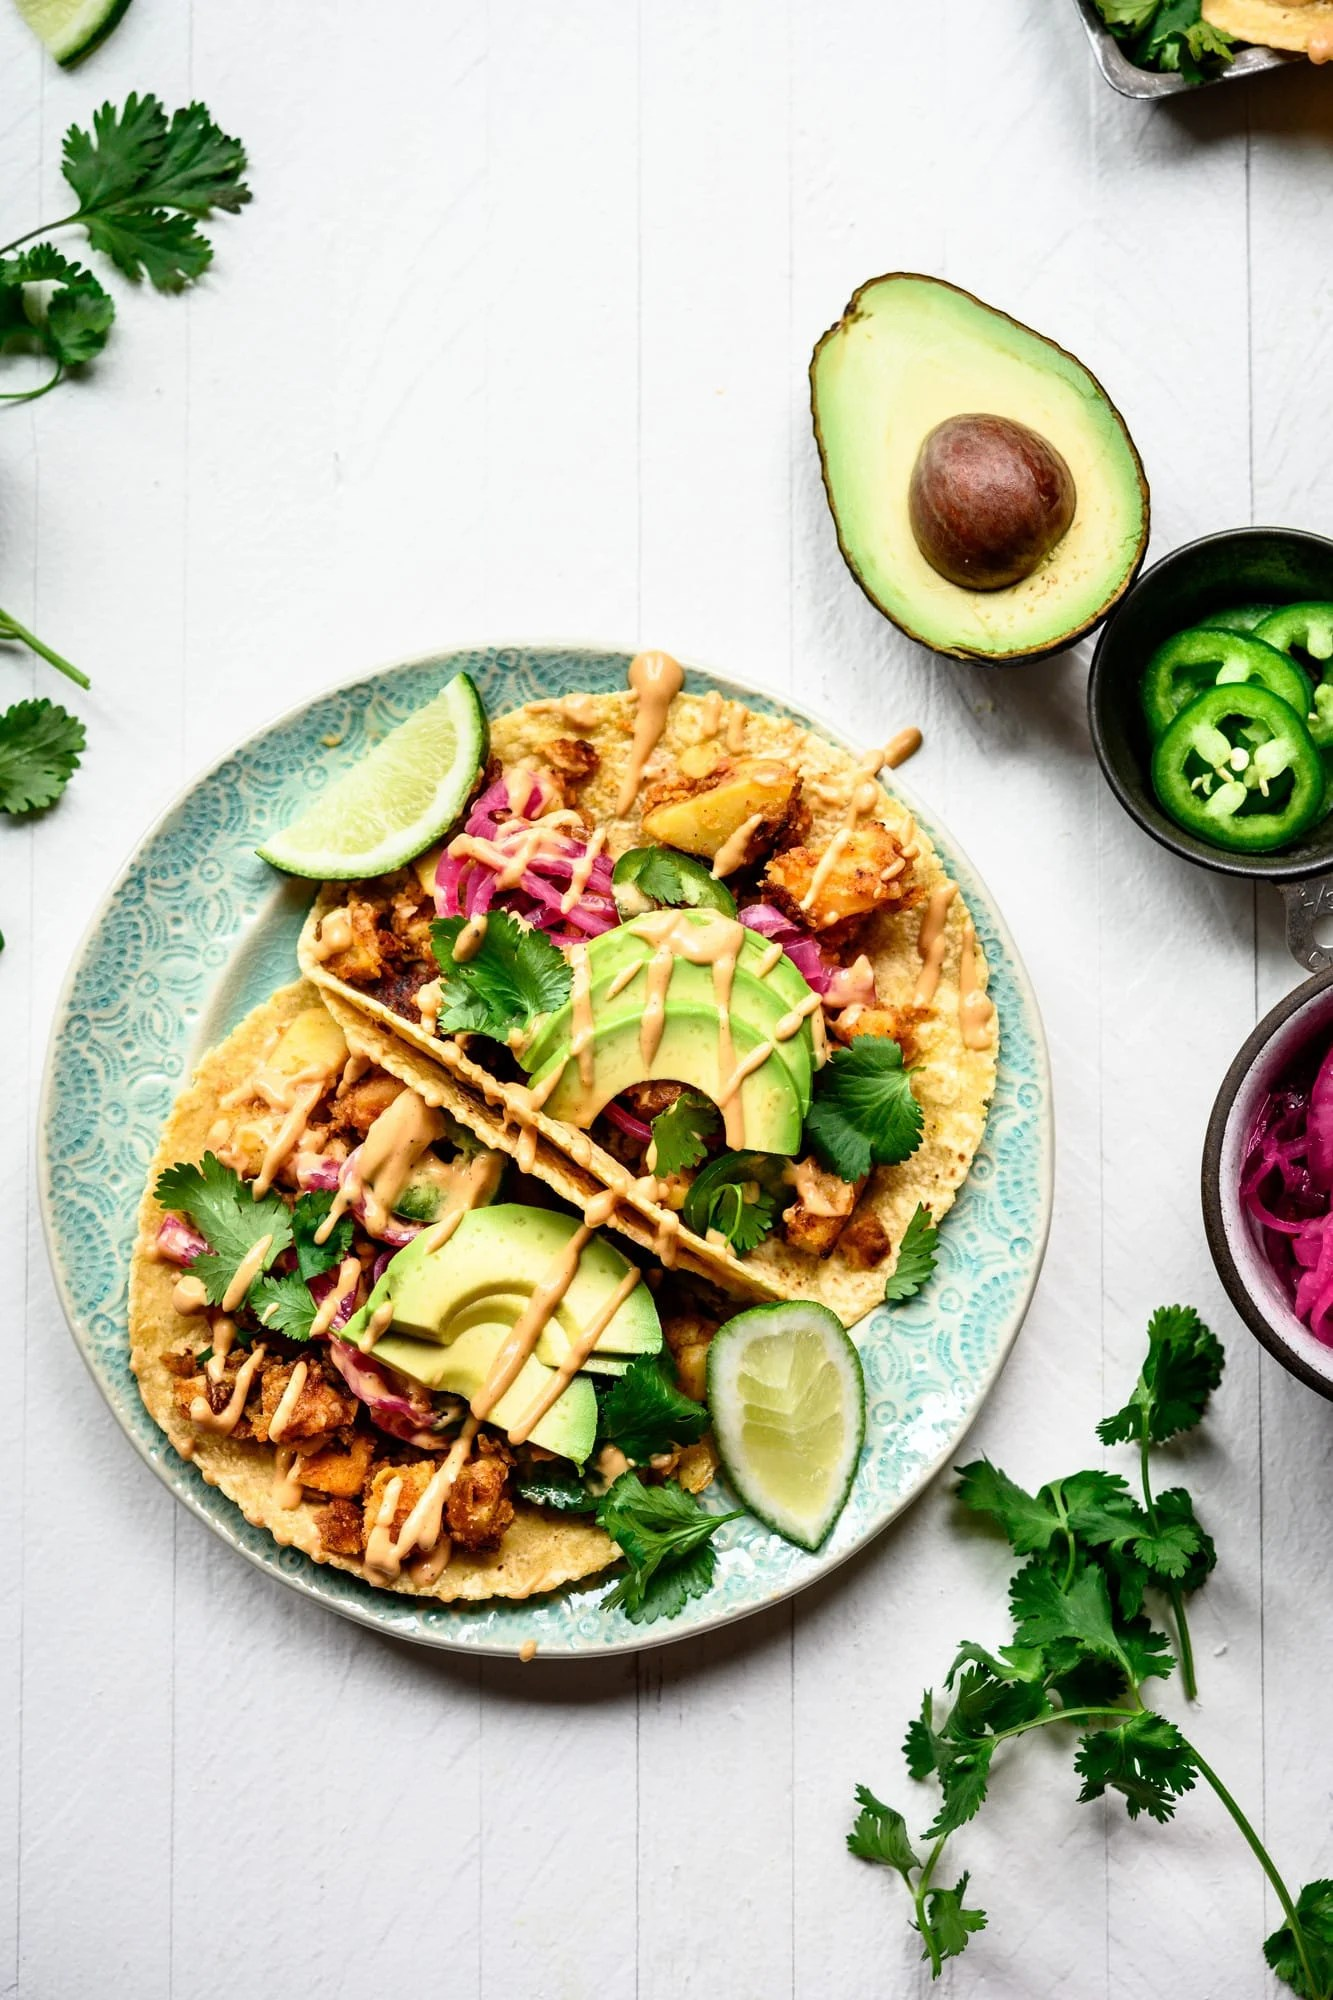 Overhead view of two vegan breakfast potato tacos on a teal plate with avocados and spicy mayo